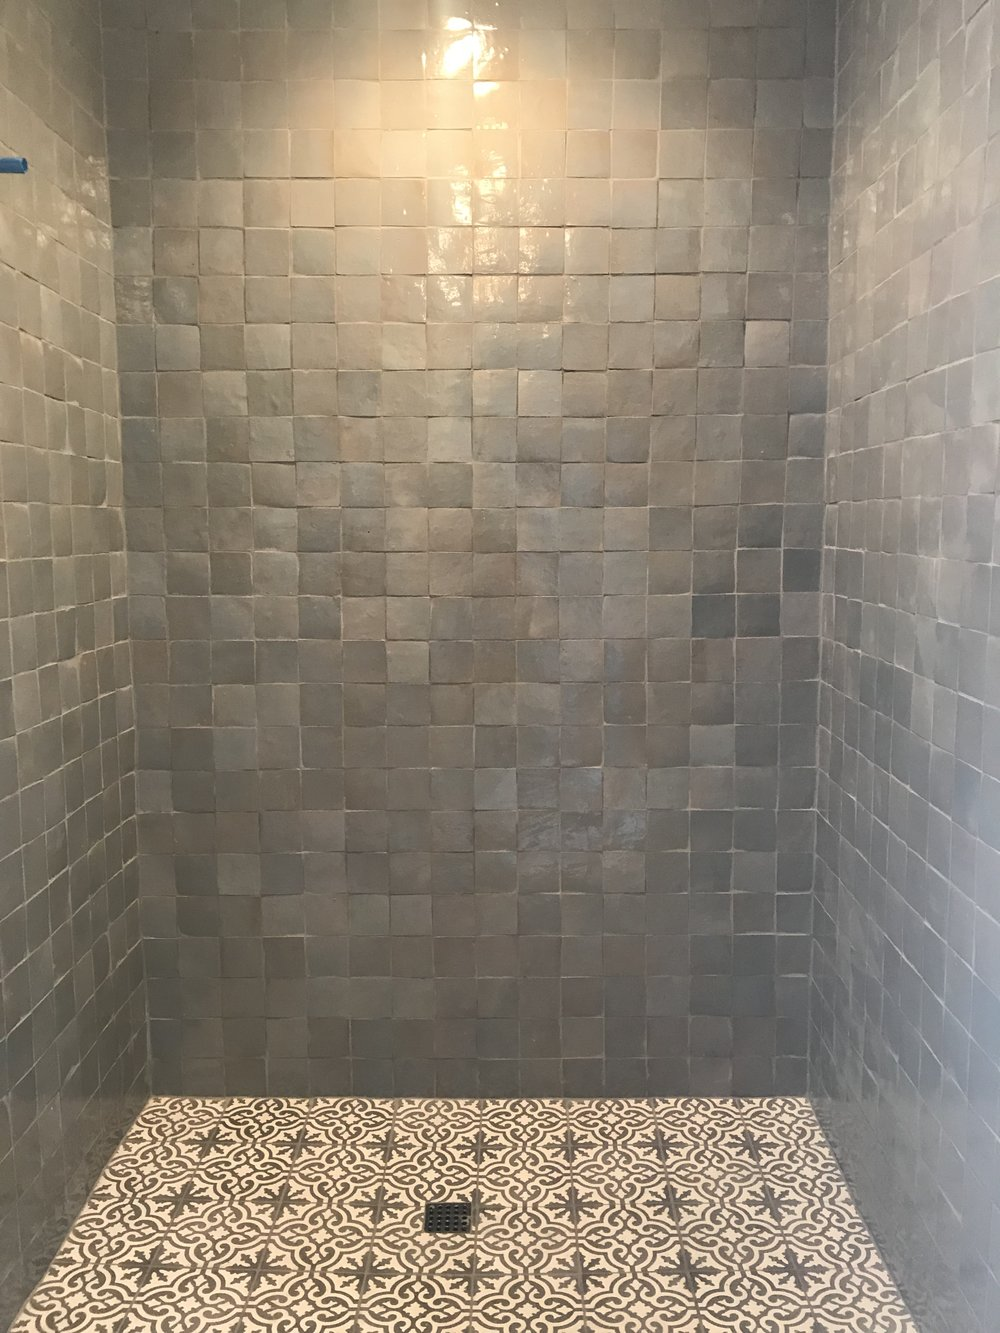 This is a pool house bathroom, I started with the  Shattered Pearl  4x4 Zellige tiles by Cle, and paired it with an 8x8  Mediterranean Cement Tile .